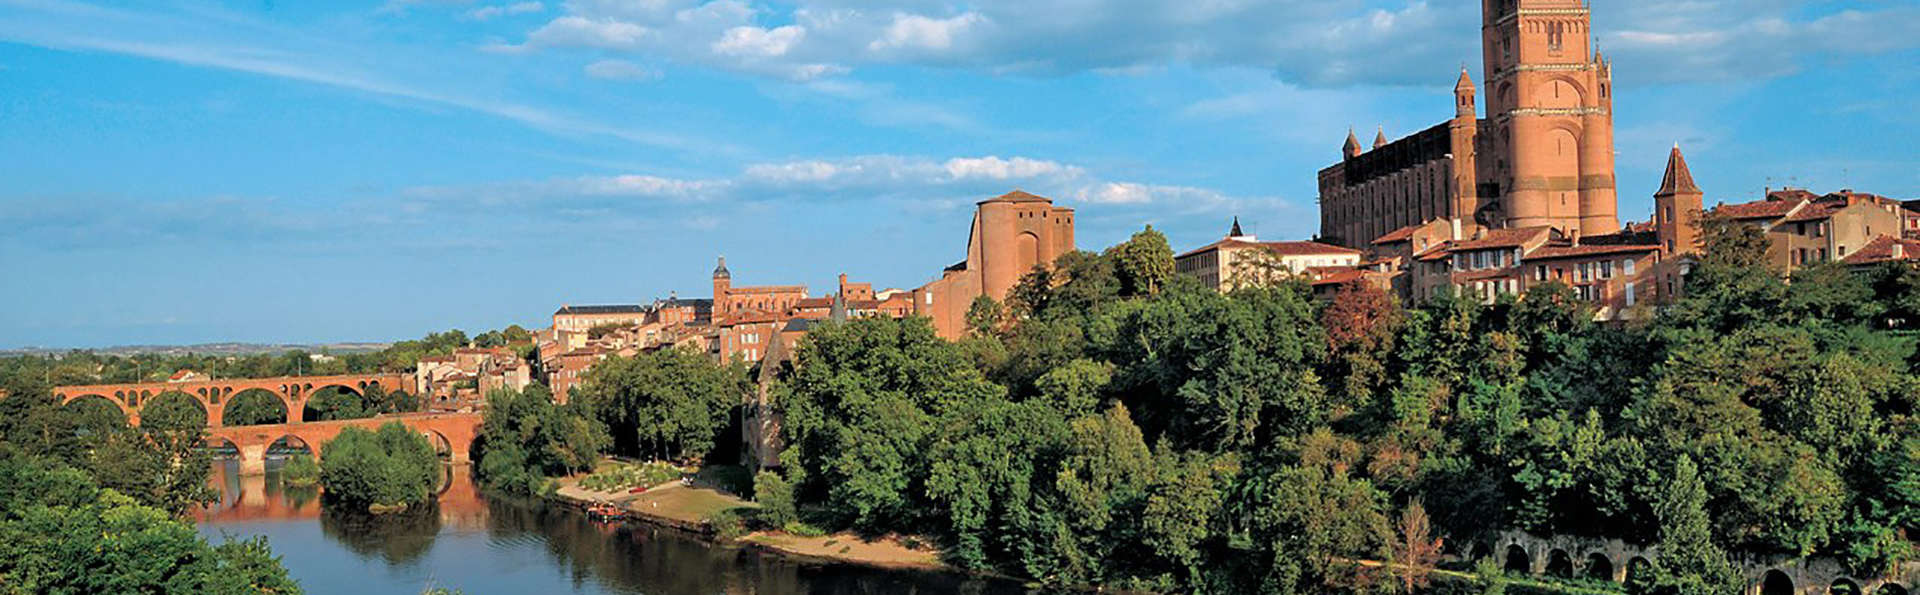 Comfort Hotel Albi - EDIT_destination3.jpg